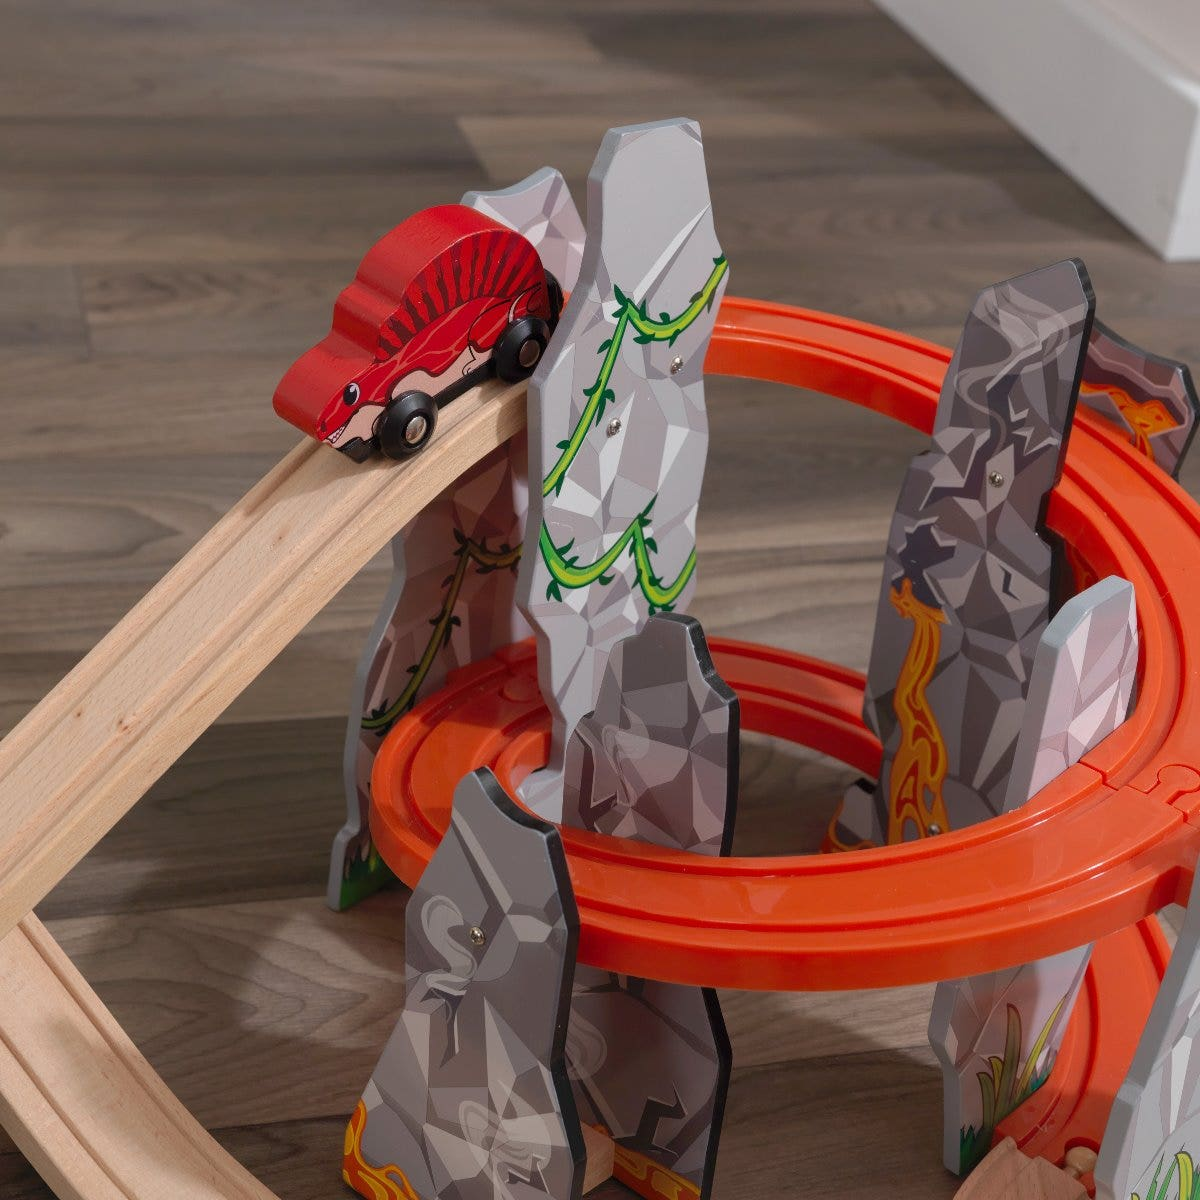 Dinos roll by a simple push so kids easily take action into their hands